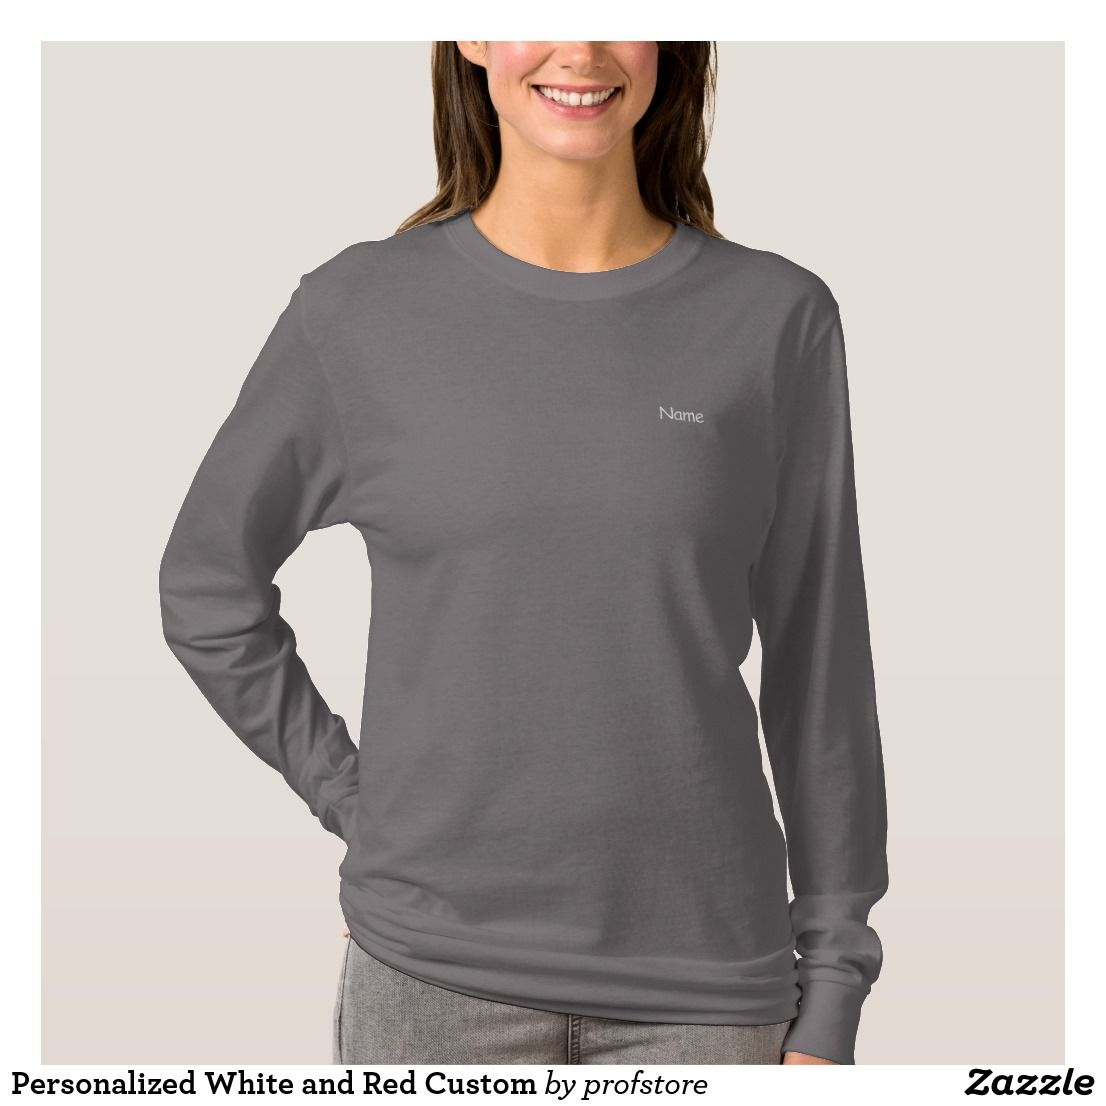 Smoke Grey Personalized Custom Women's Embroidered Long Sleeve T-Shirt - Create Your Own Embroidery Text Design